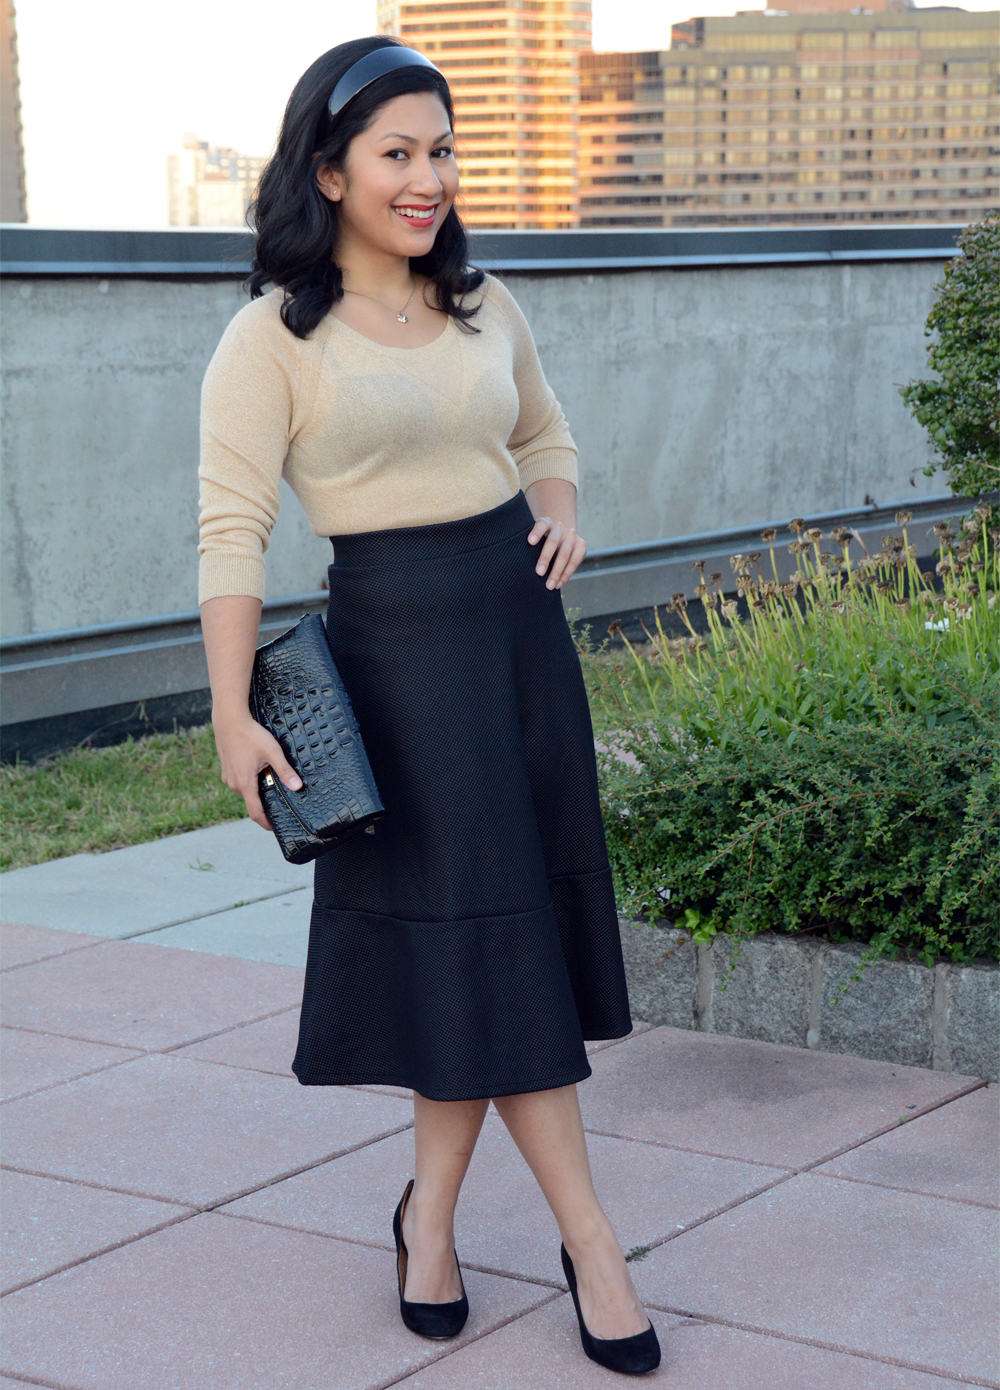 H&M textured skirt